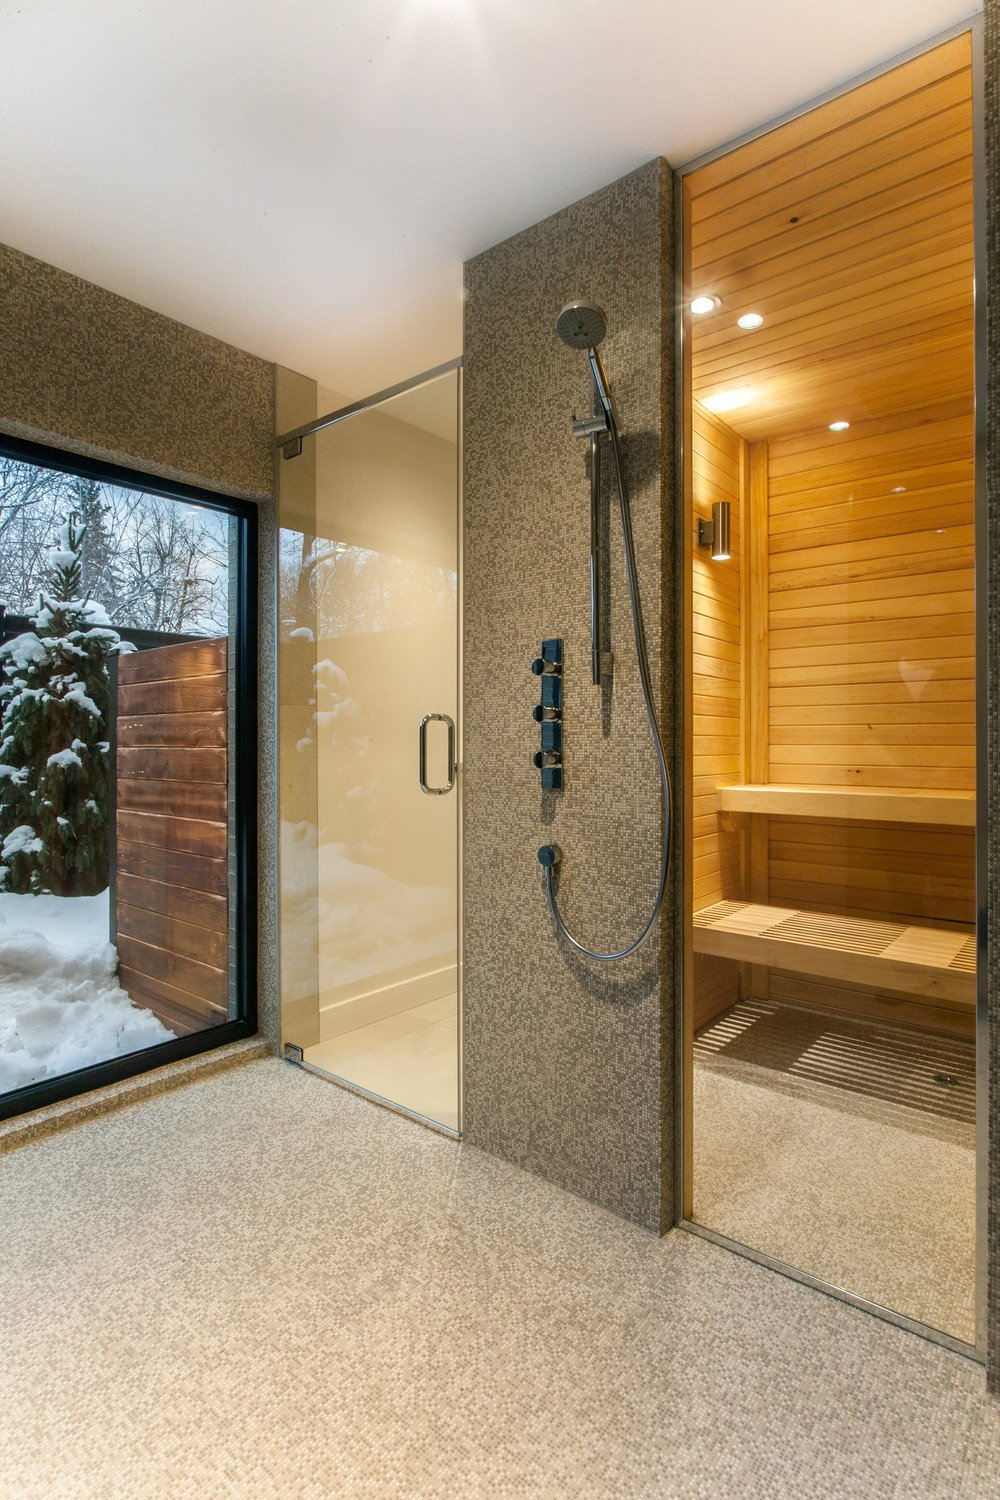 Bath Room and Enclosed Shower The renovated house is outfitted with a sauna.  Photo 9 of 10 in 10 Sterling Saunas in Modern Homes from Near Montreal, a 1950s House Gets a Modern Makeover